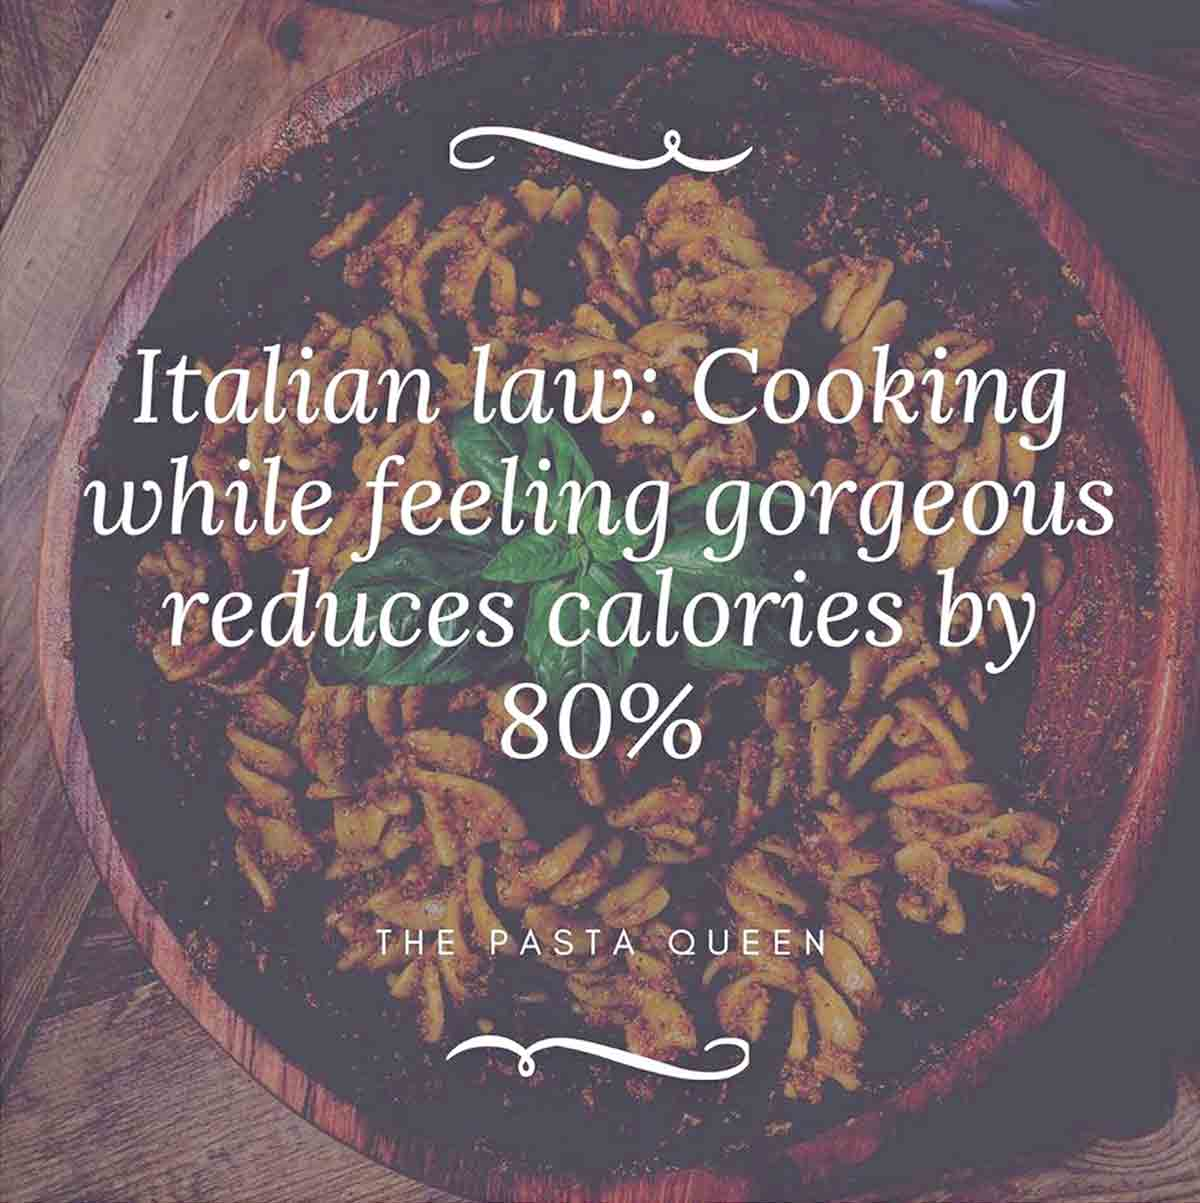 Italian Law: Cooking While Feeling Gorgeous Reduces Calories by 80%